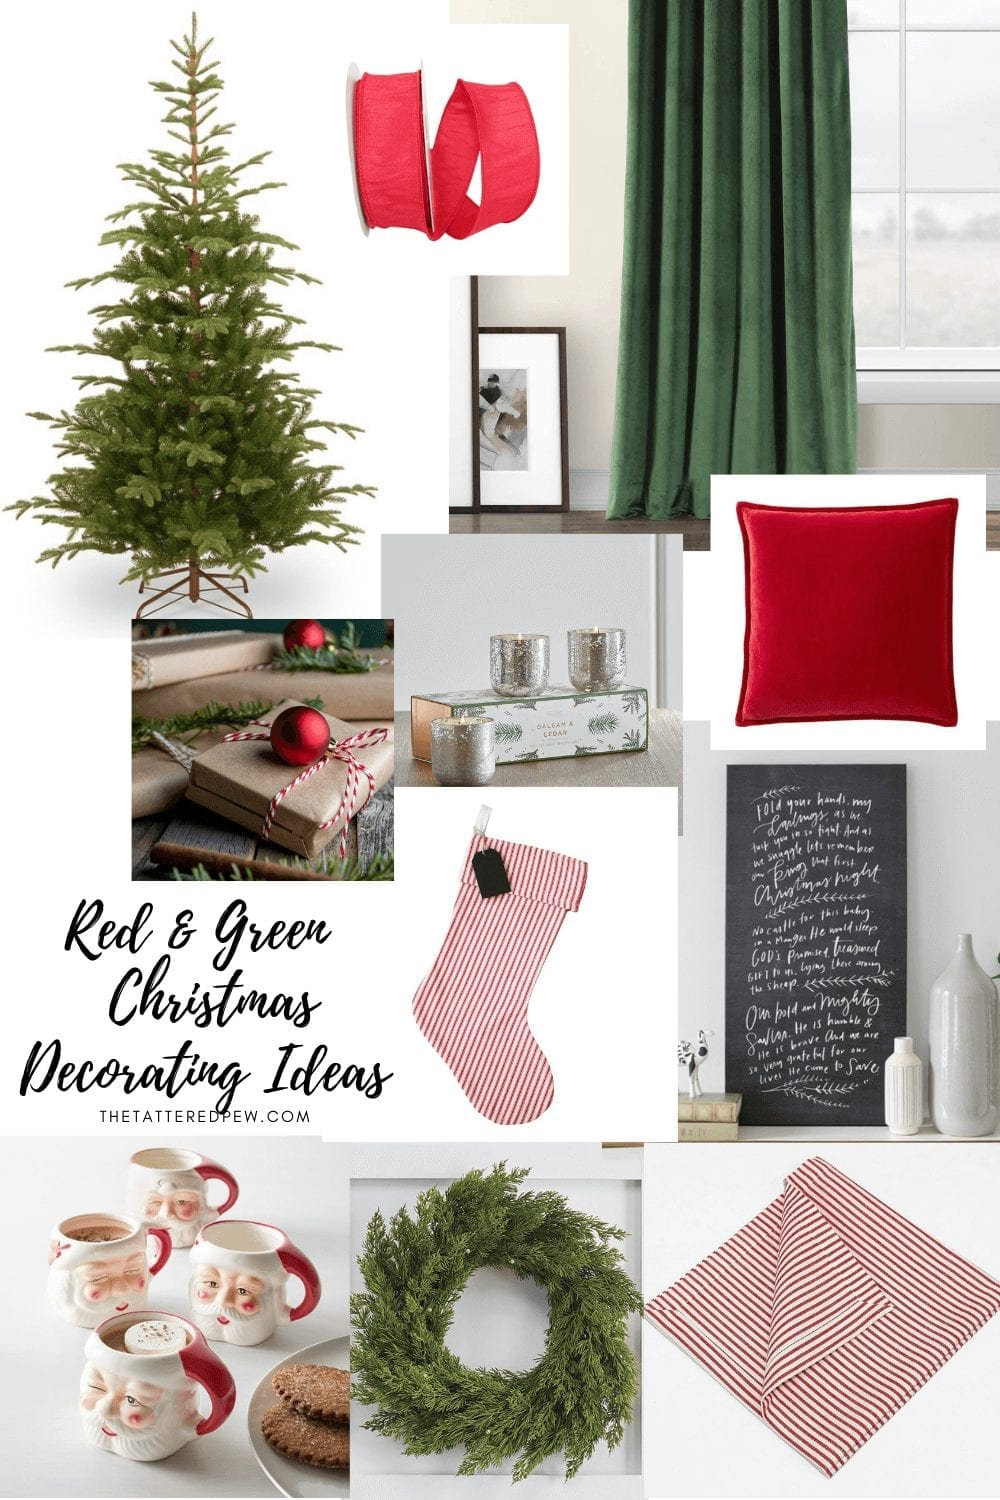 Red and Green Christmas decorating ideas!